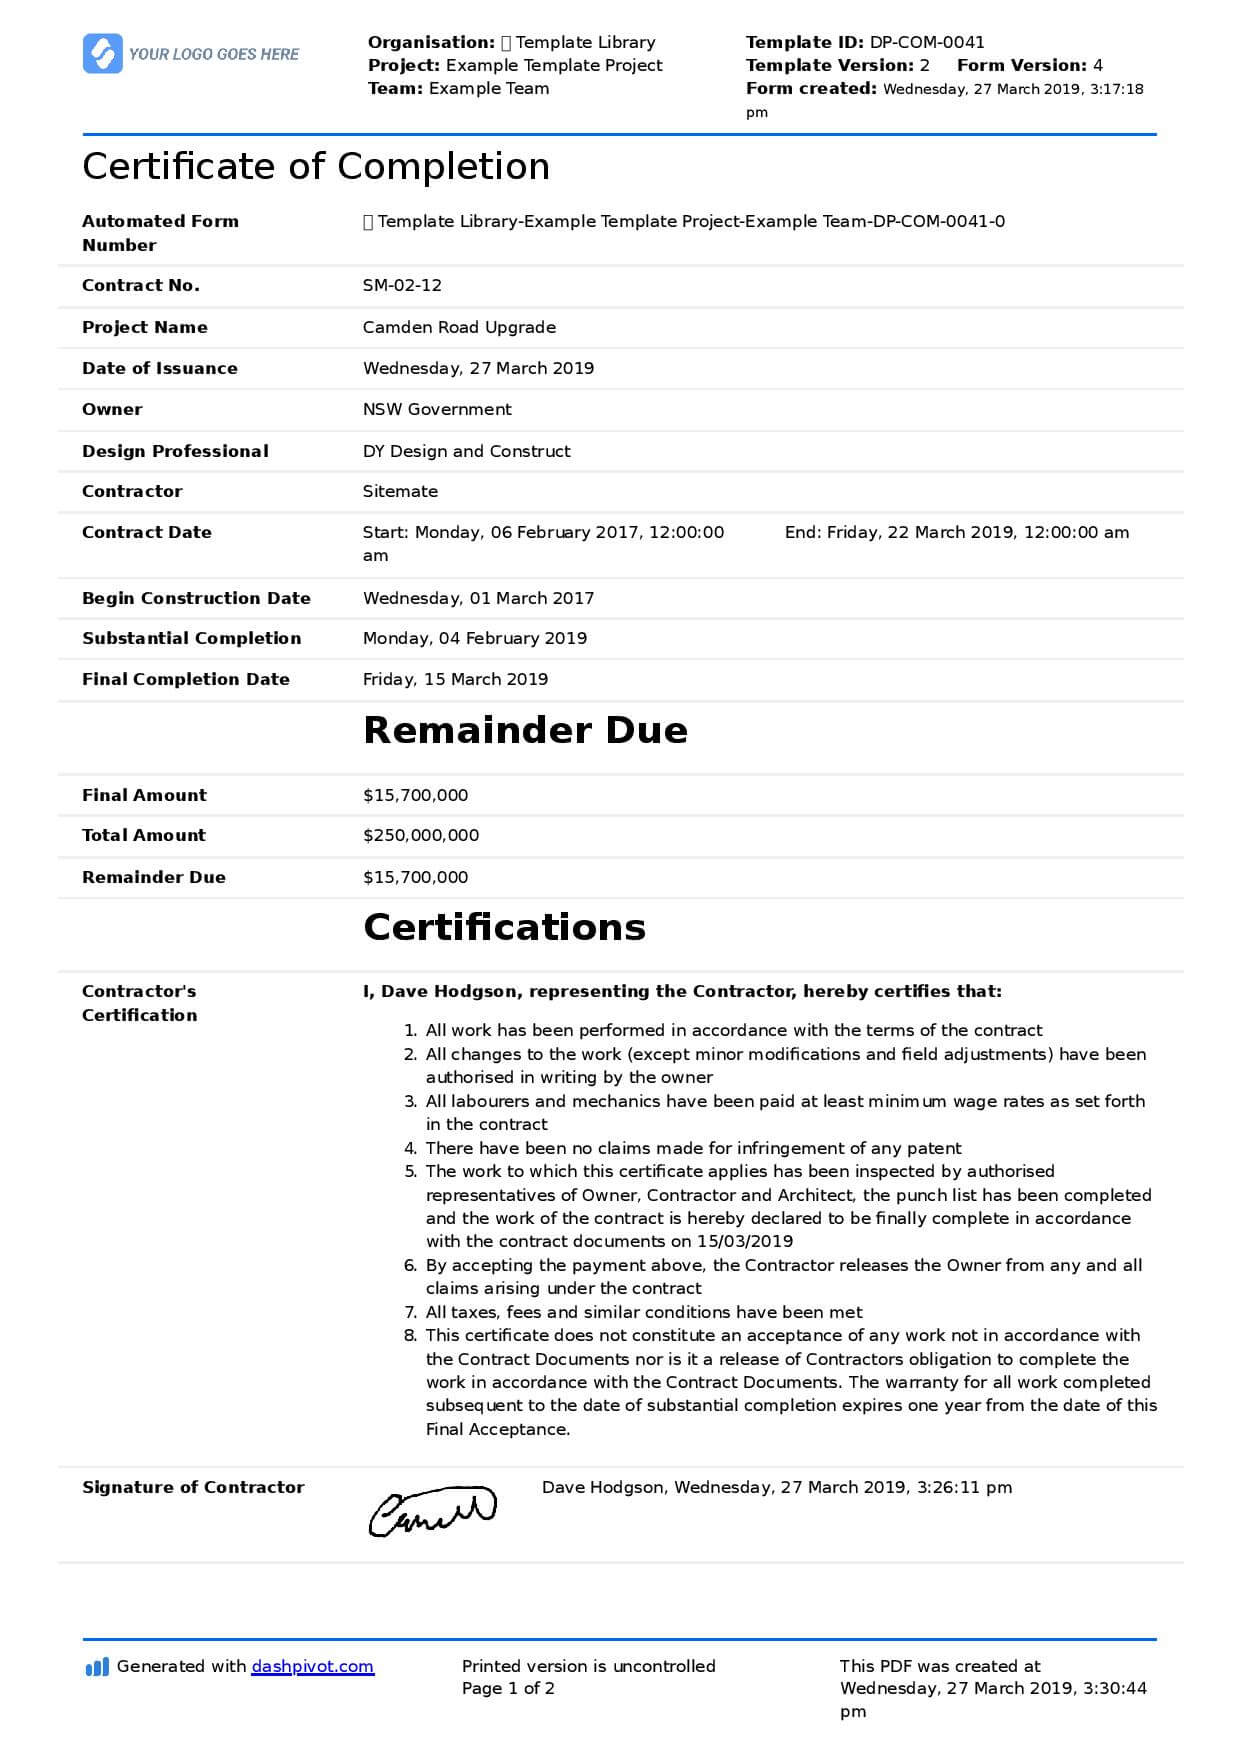 Certificate Of Completion For Construction (Free Template + Throughout Certificate Of Completion Construction Templates